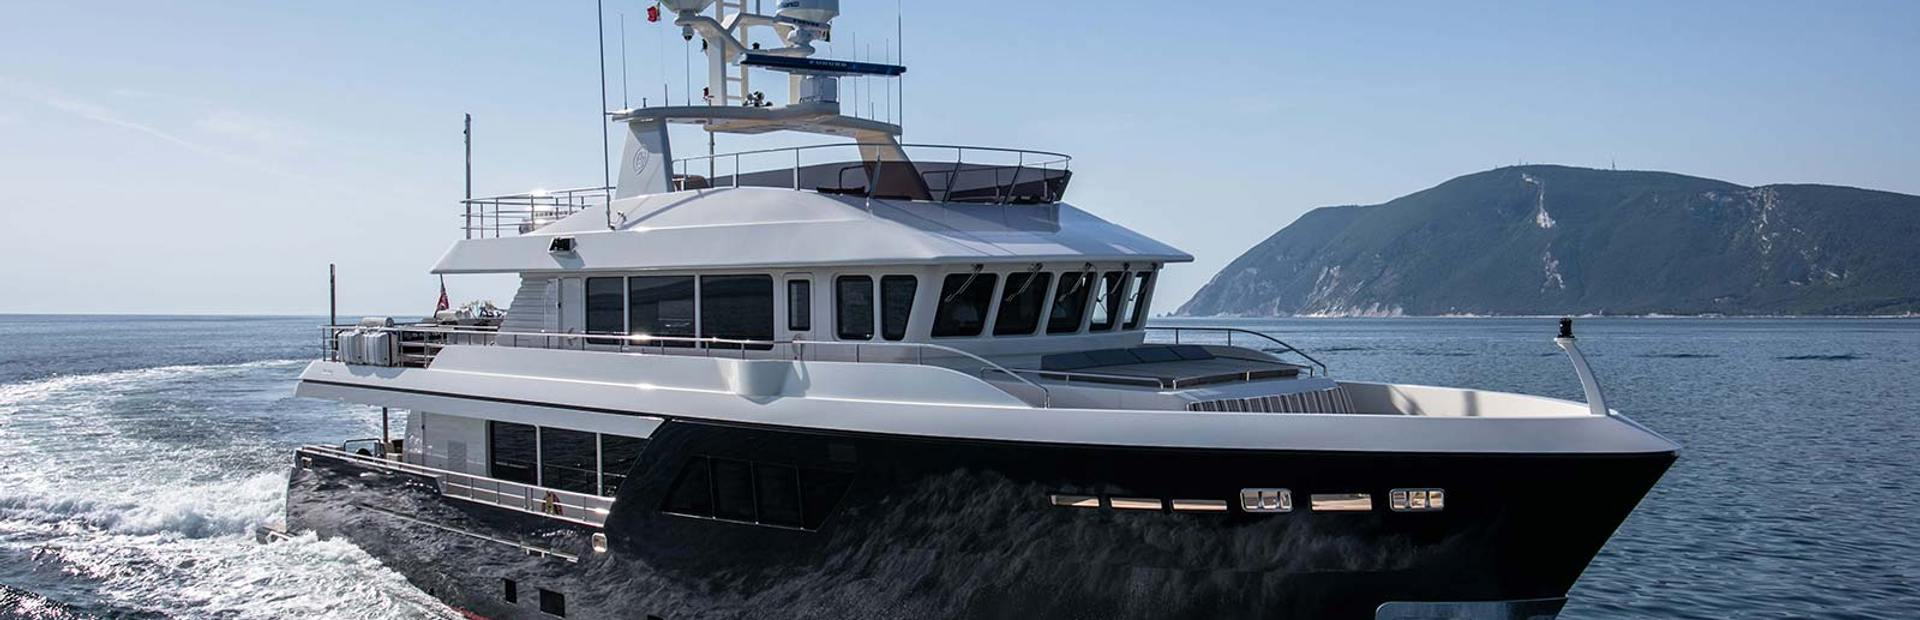 Cantiere Delle Marche Darwin 102 Yacht Charter